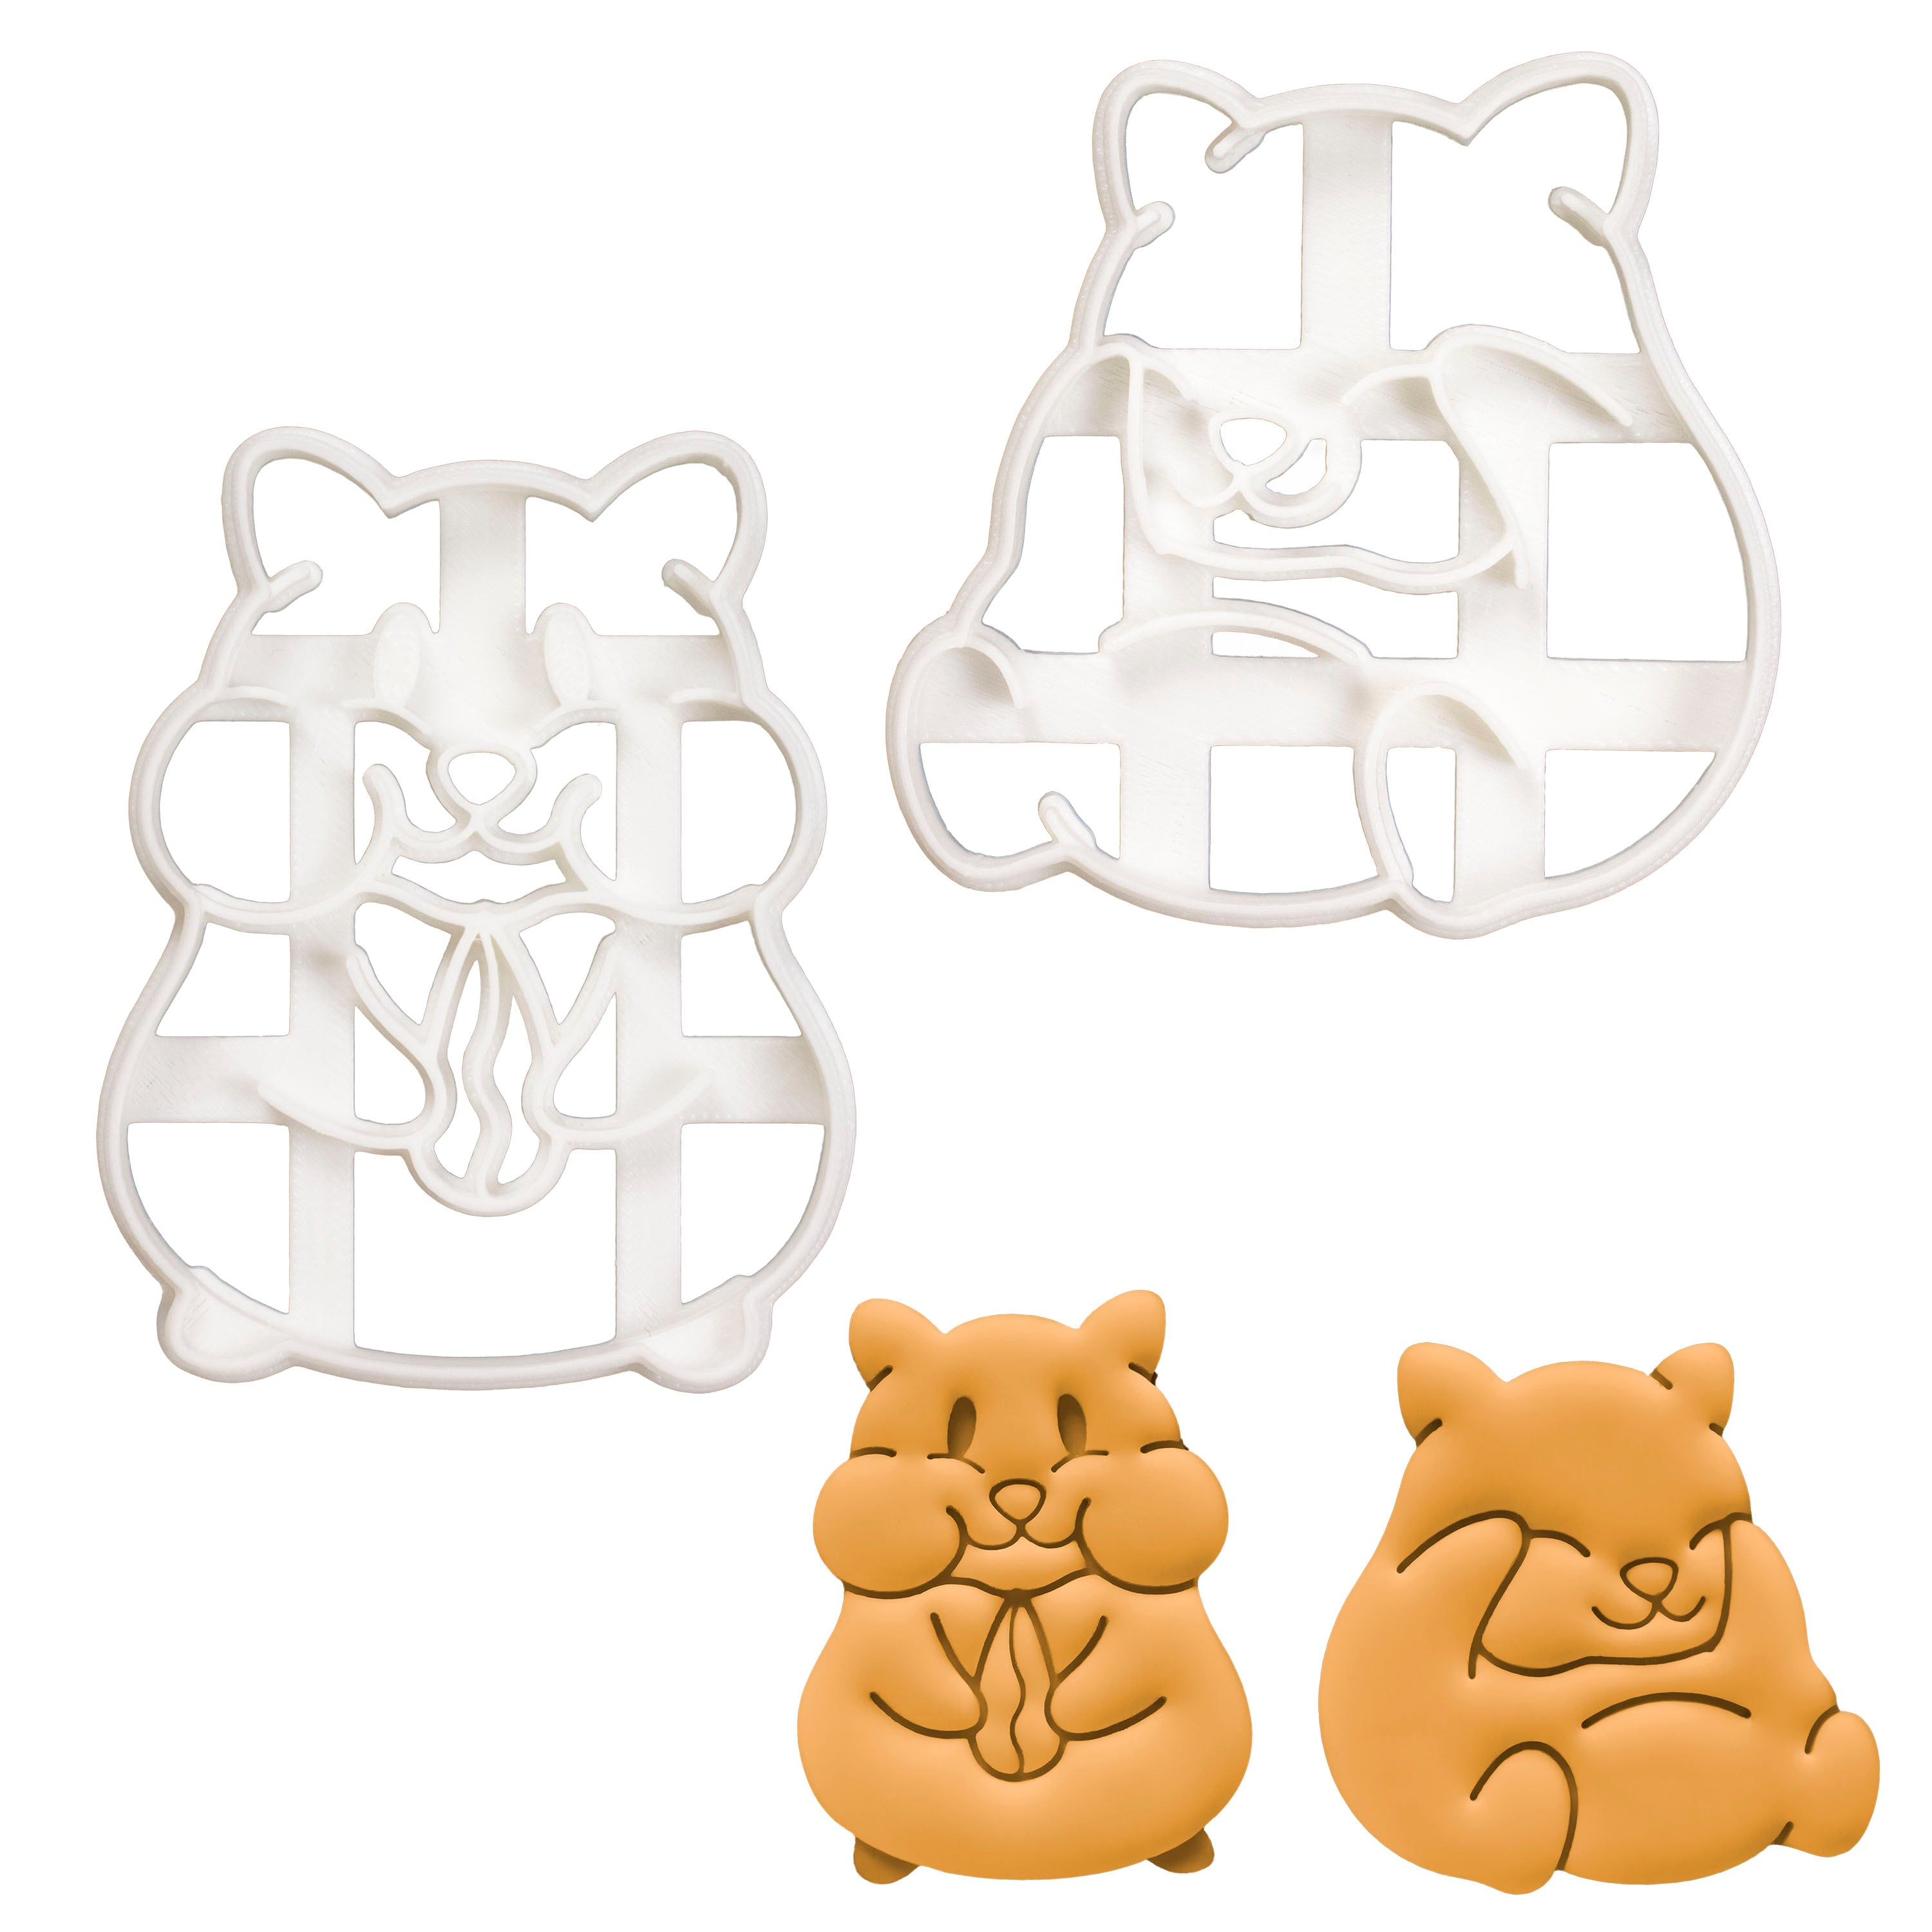 Set of 2 Hamsters cookie cutters (Designs: Eating and Grooming)